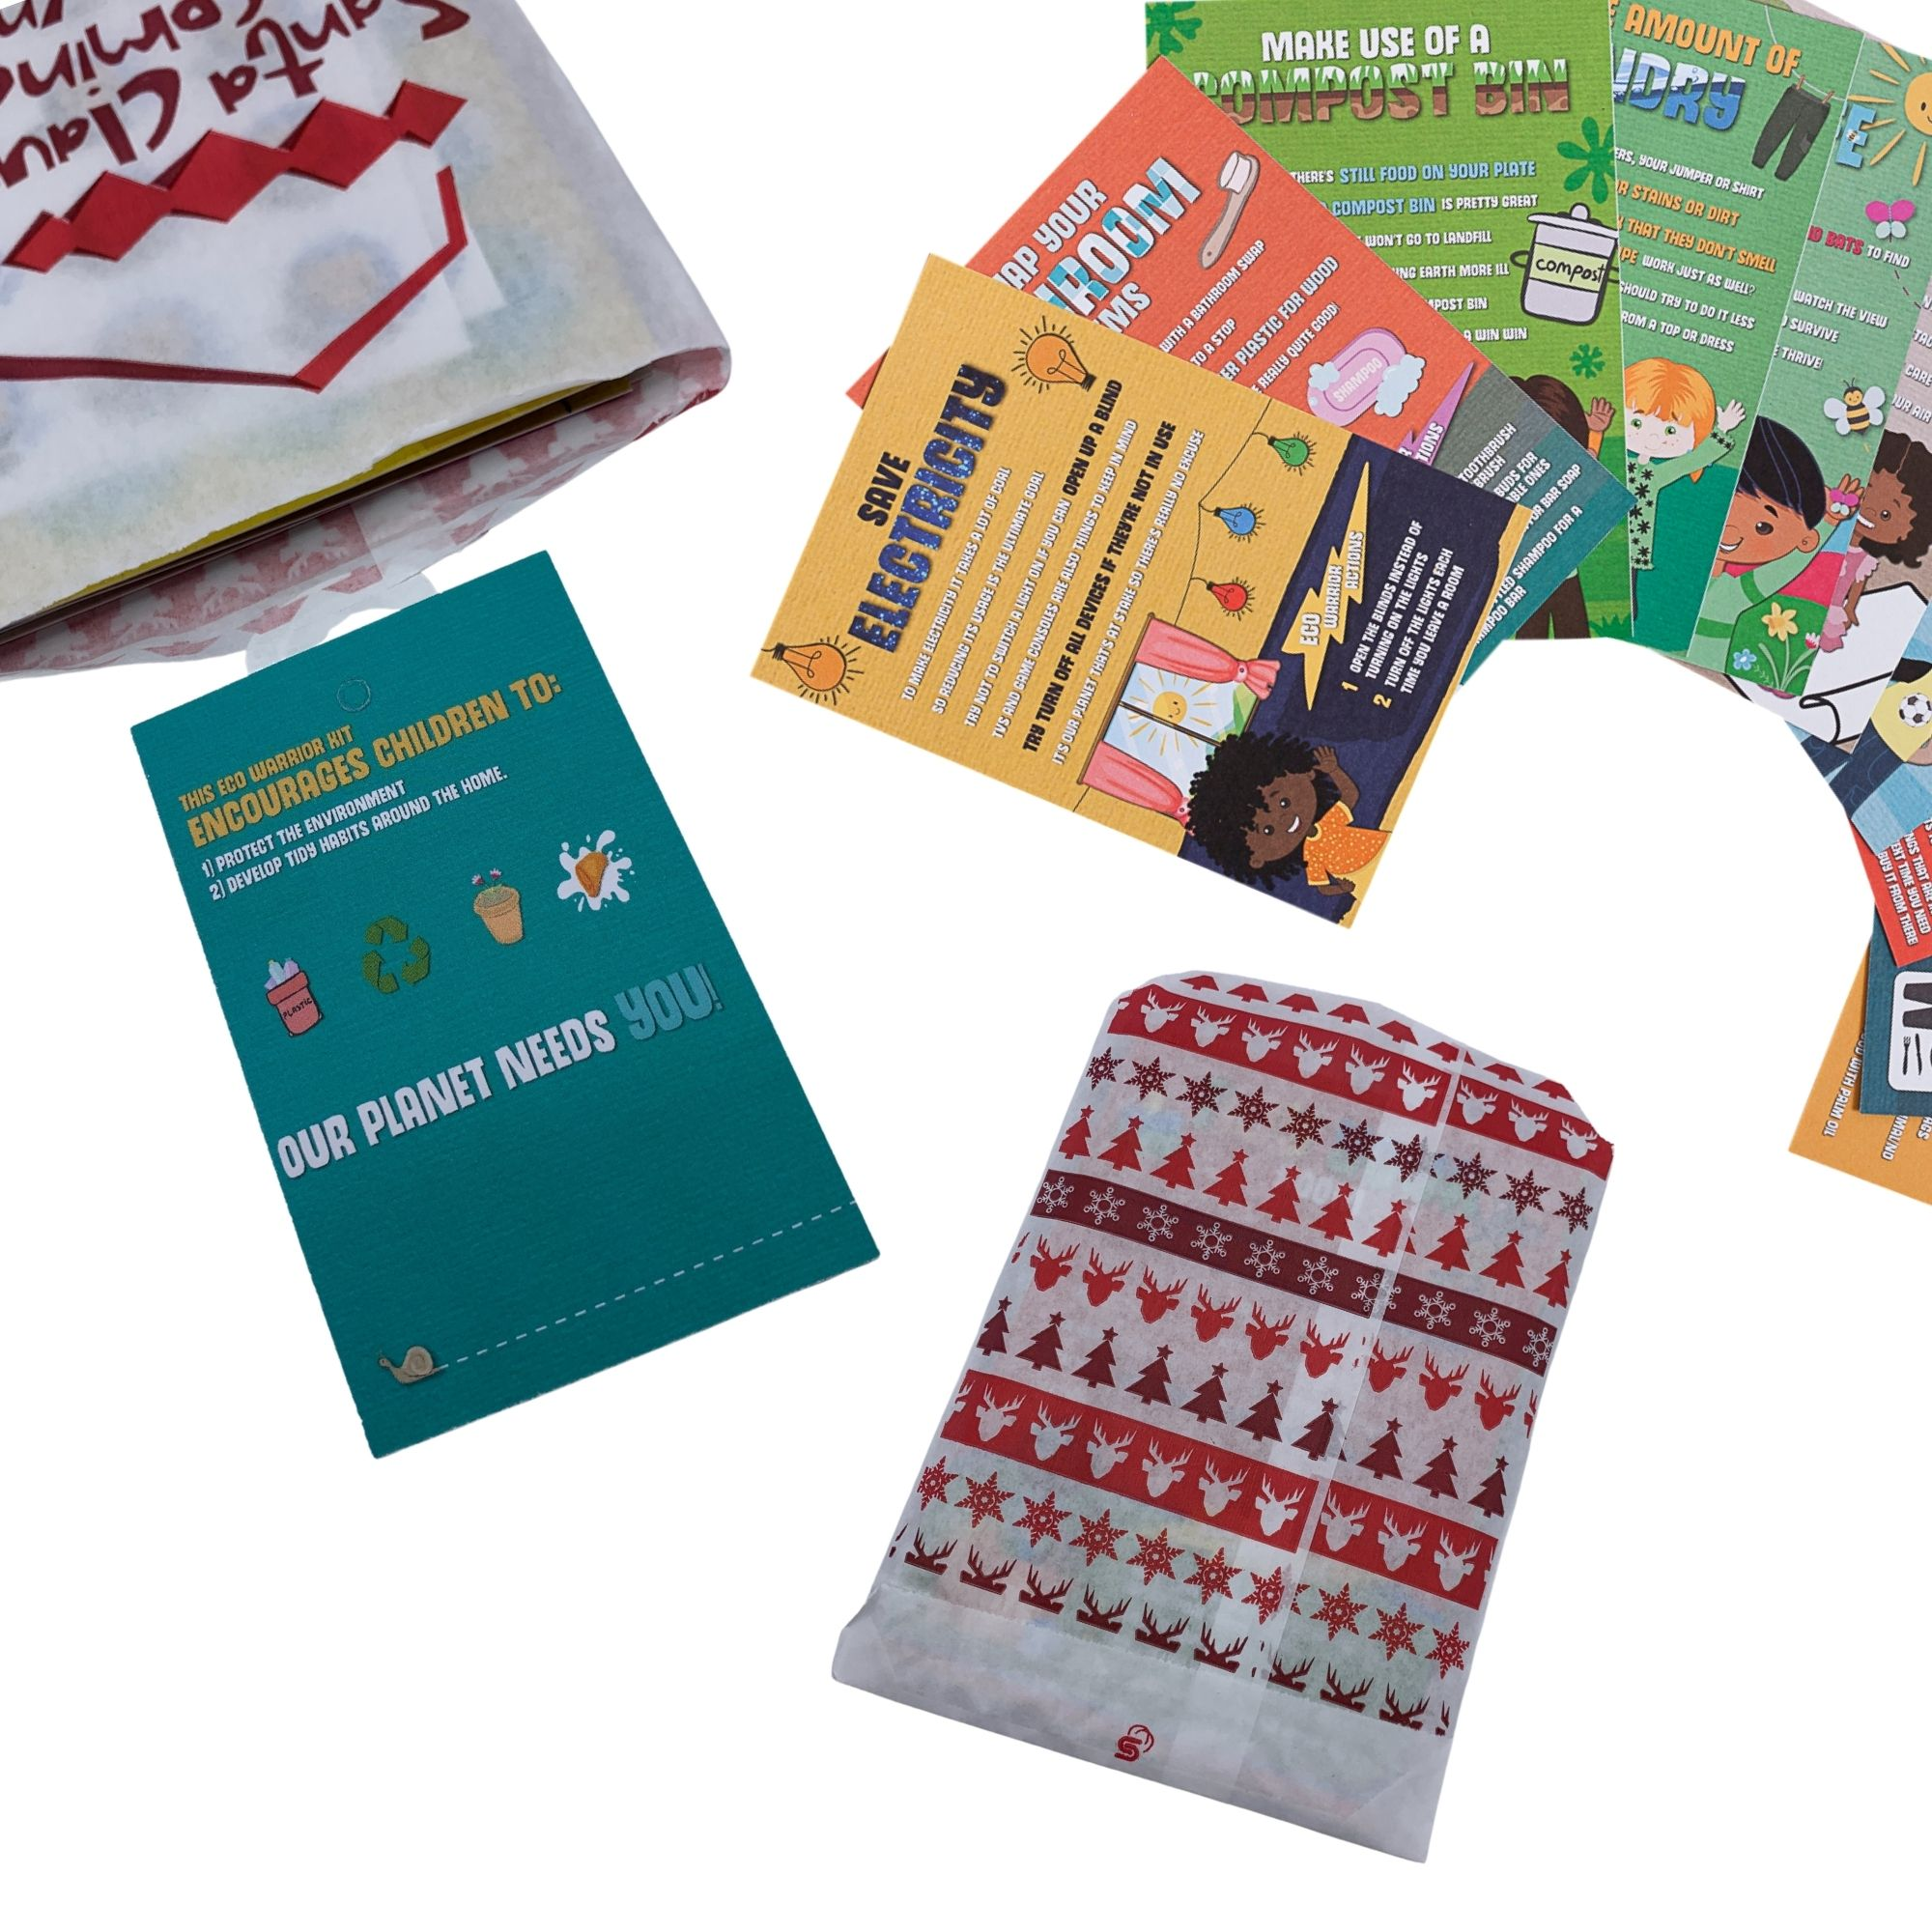 Eco Warriors Stocking Filler (Small Pack) - Christmas Eve Box Activity - Climate change, Sustainability, Recycled Cards for Kids, Children